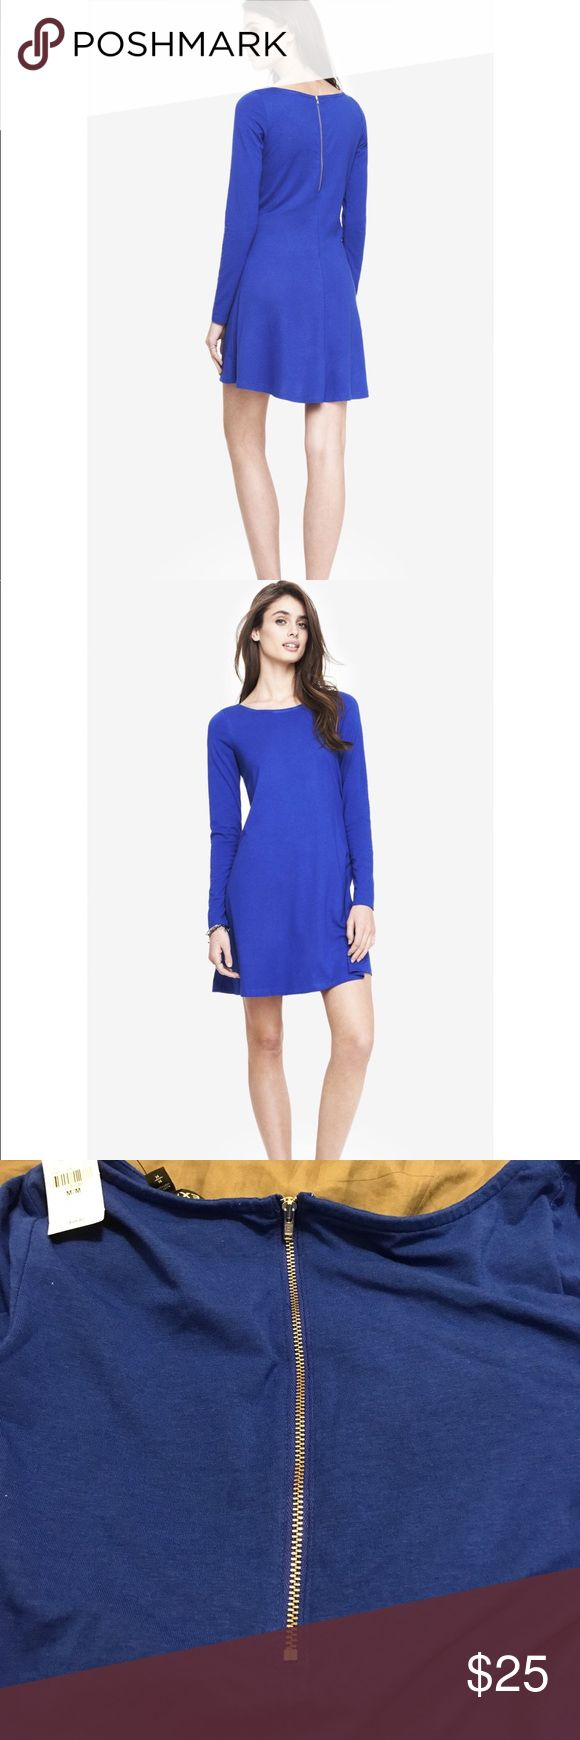 Express Long Sleeve Zip Back Trapeze Dress ✨✨ BRAND NEW ✨✨ Express Long Sleeve Zip Back Trapeze Dress ✨✨ ** in blue royal blue. Perfect for upcoming fall weather. 🍂🍂 make an offer 🍂🍂 Express Dresses Long Sleeve